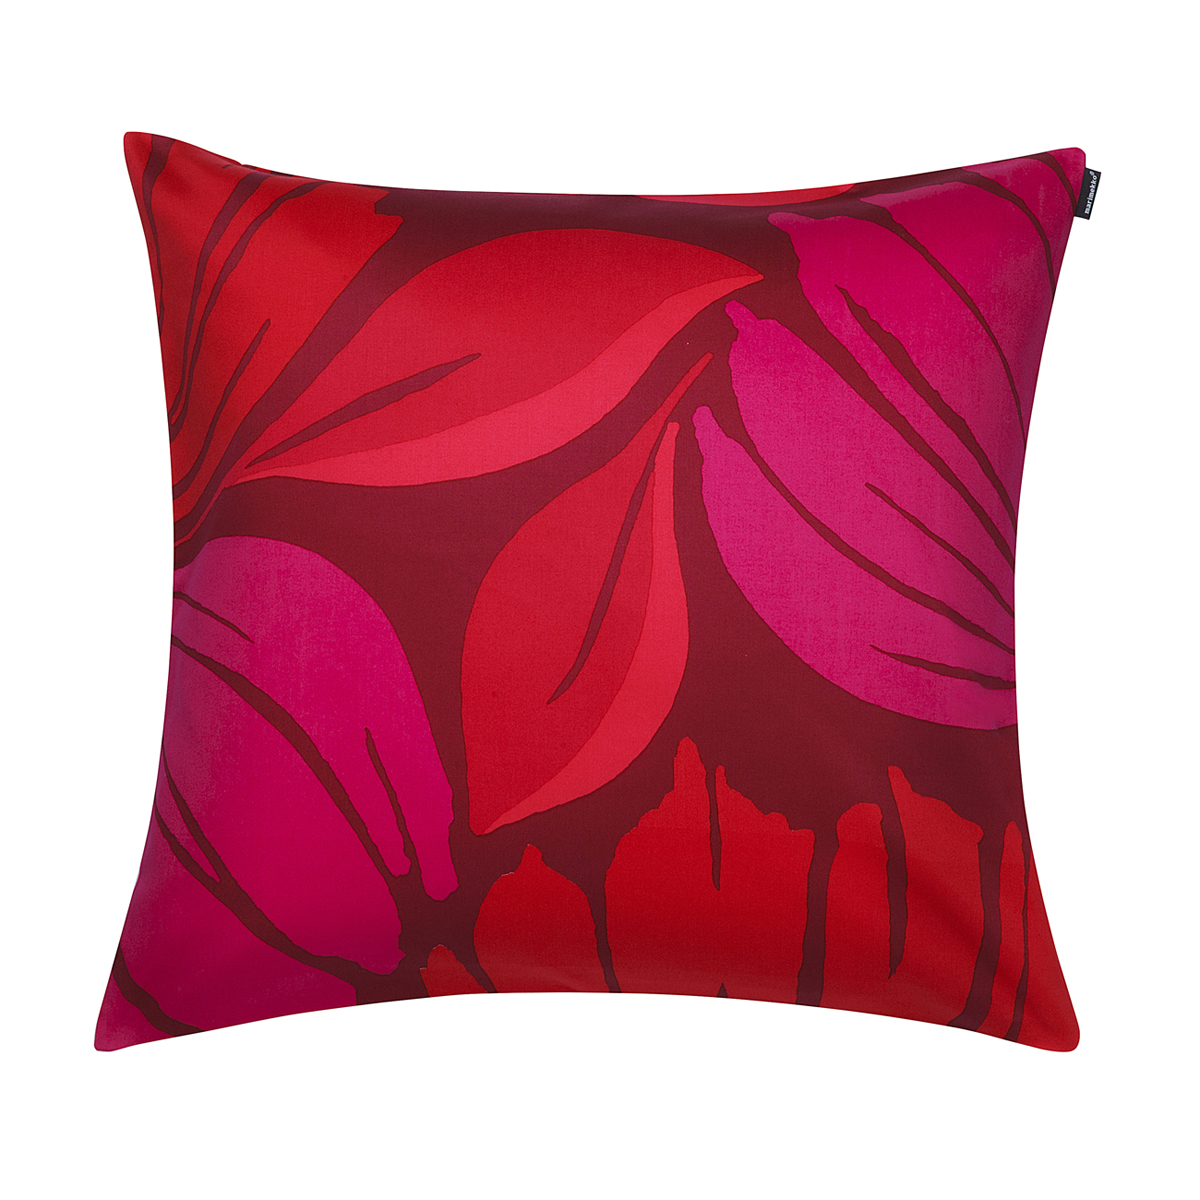 Red Throw Pillows For Bed : Marimekko Ananaskirsikka Red Throw Pillow - Marimekko Bed & Bath Sale